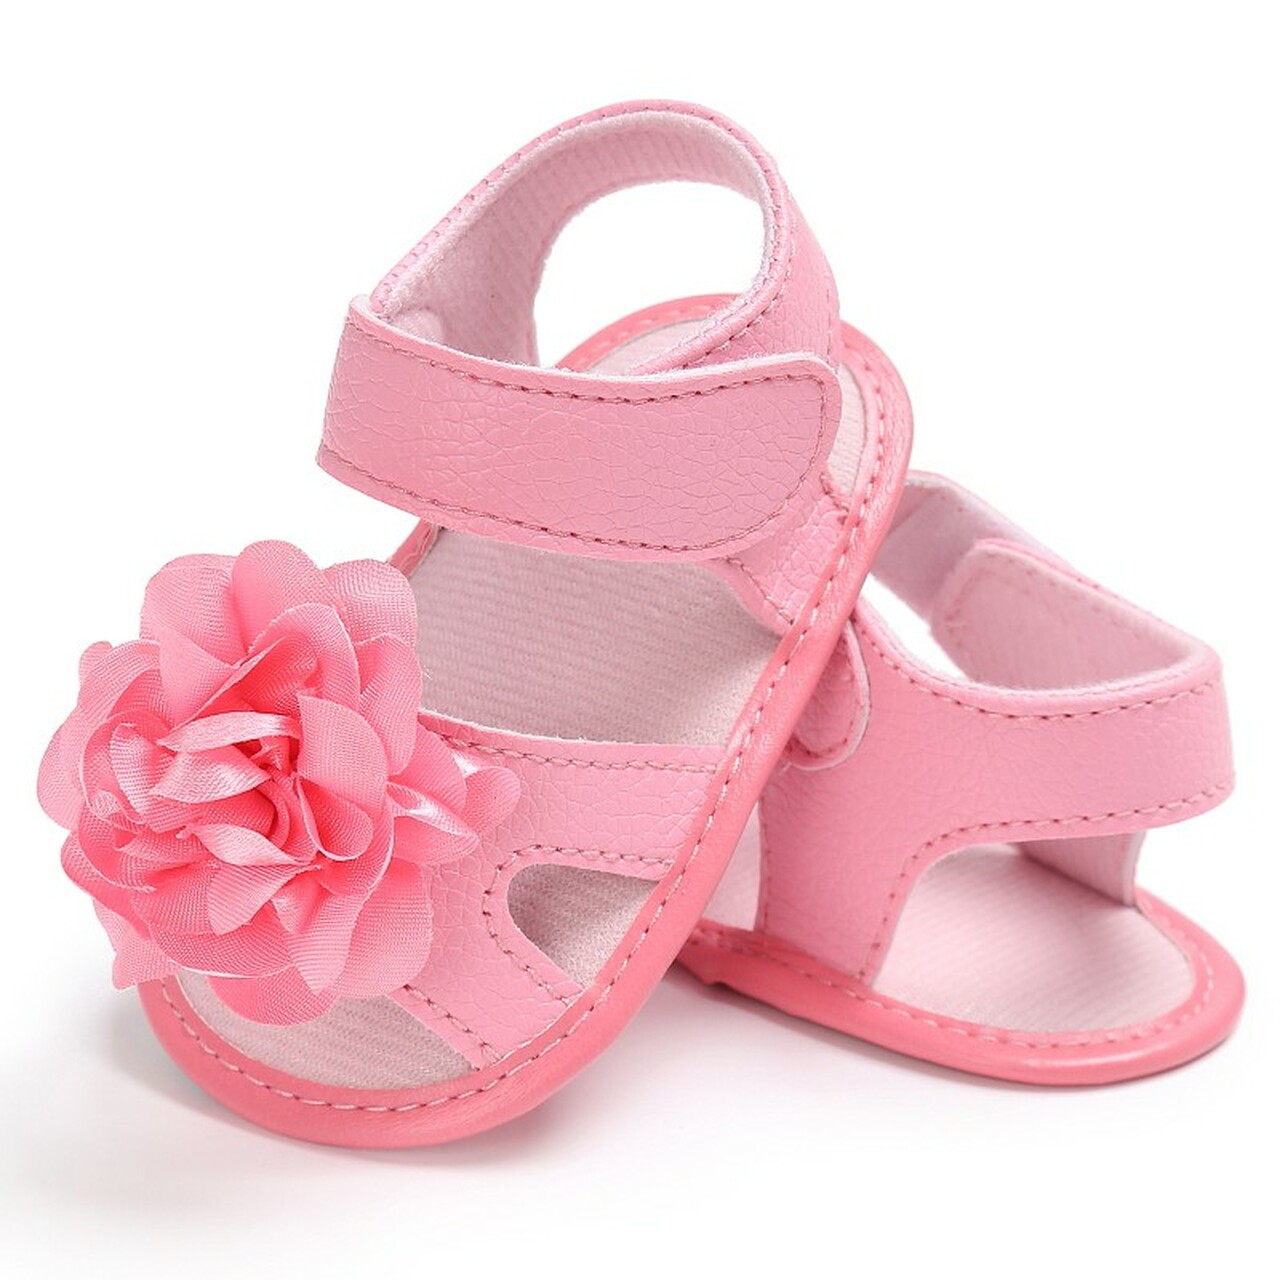 Baby Shoes First Walkers Sweet Baby Girls Princess Polka Dot Big Bow Infant Toddler Ballet Dress Soft Soled Anti-slip Shoes Footwear